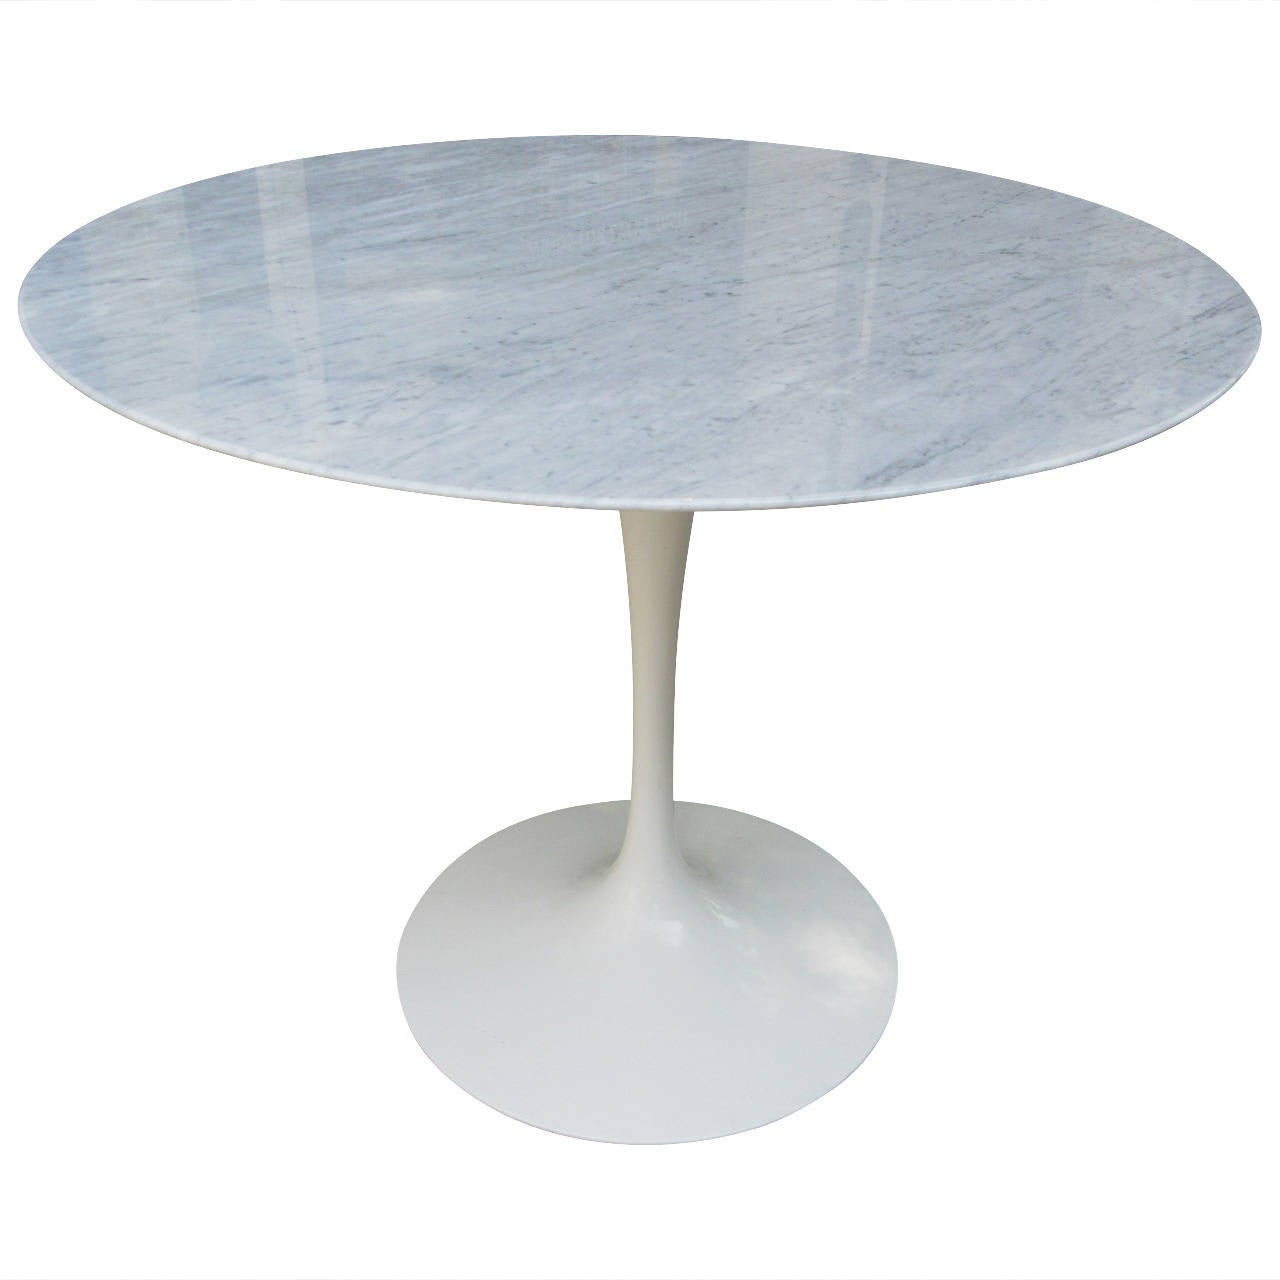 eero saarinen tulip dining table in marble at 1stdibs. Black Bedroom Furniture Sets. Home Design Ideas